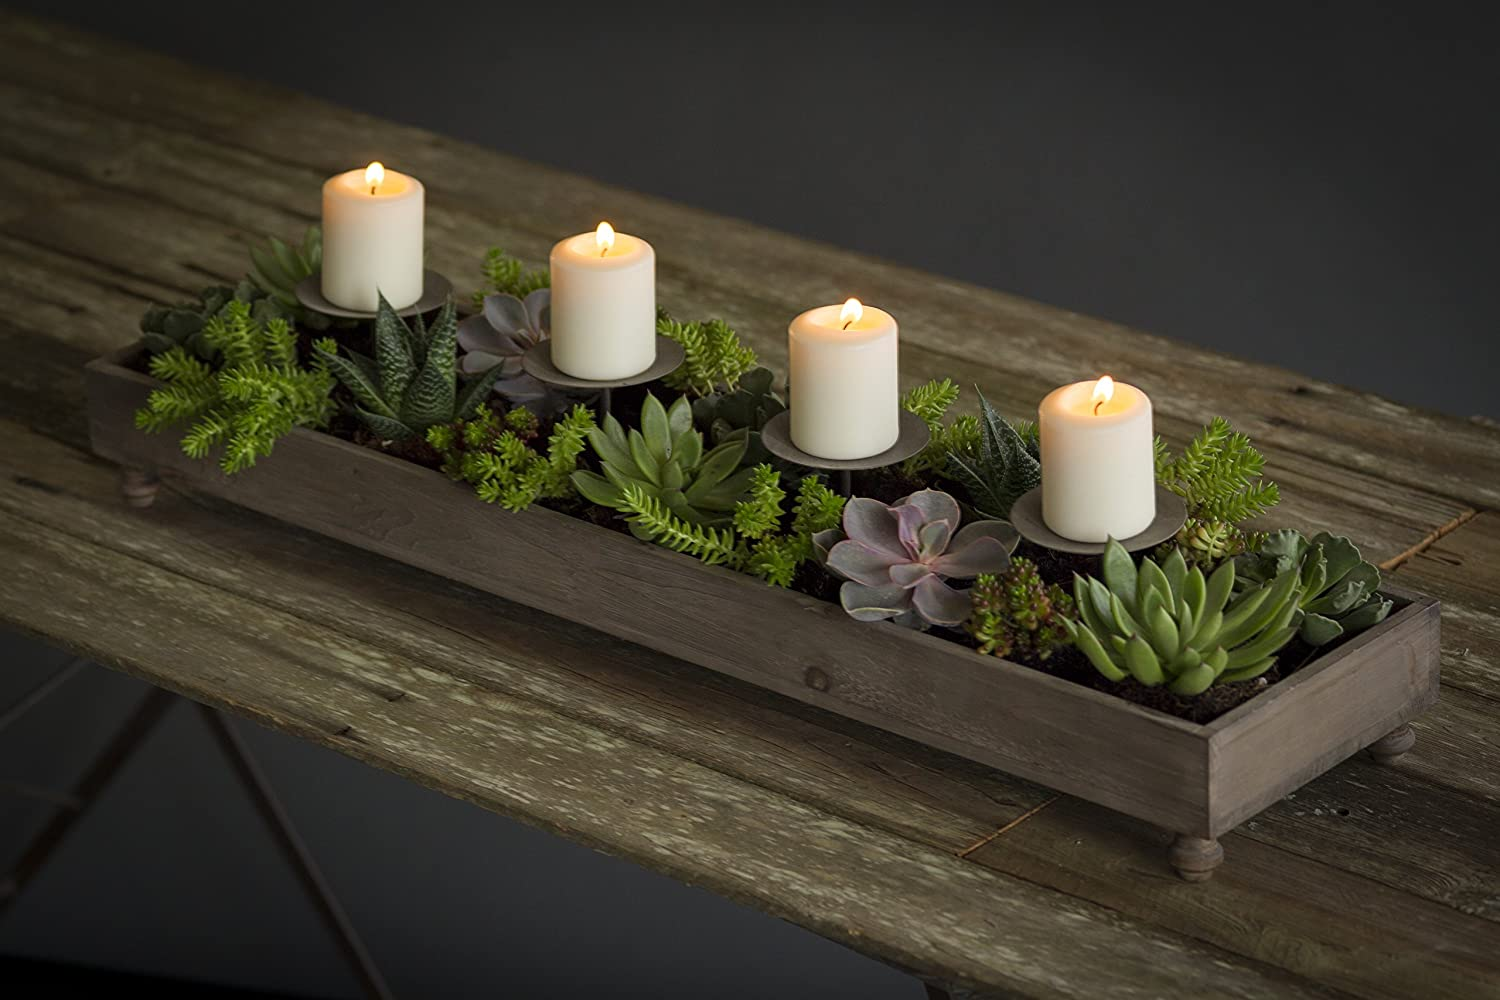 Table Planter/Candle Holders